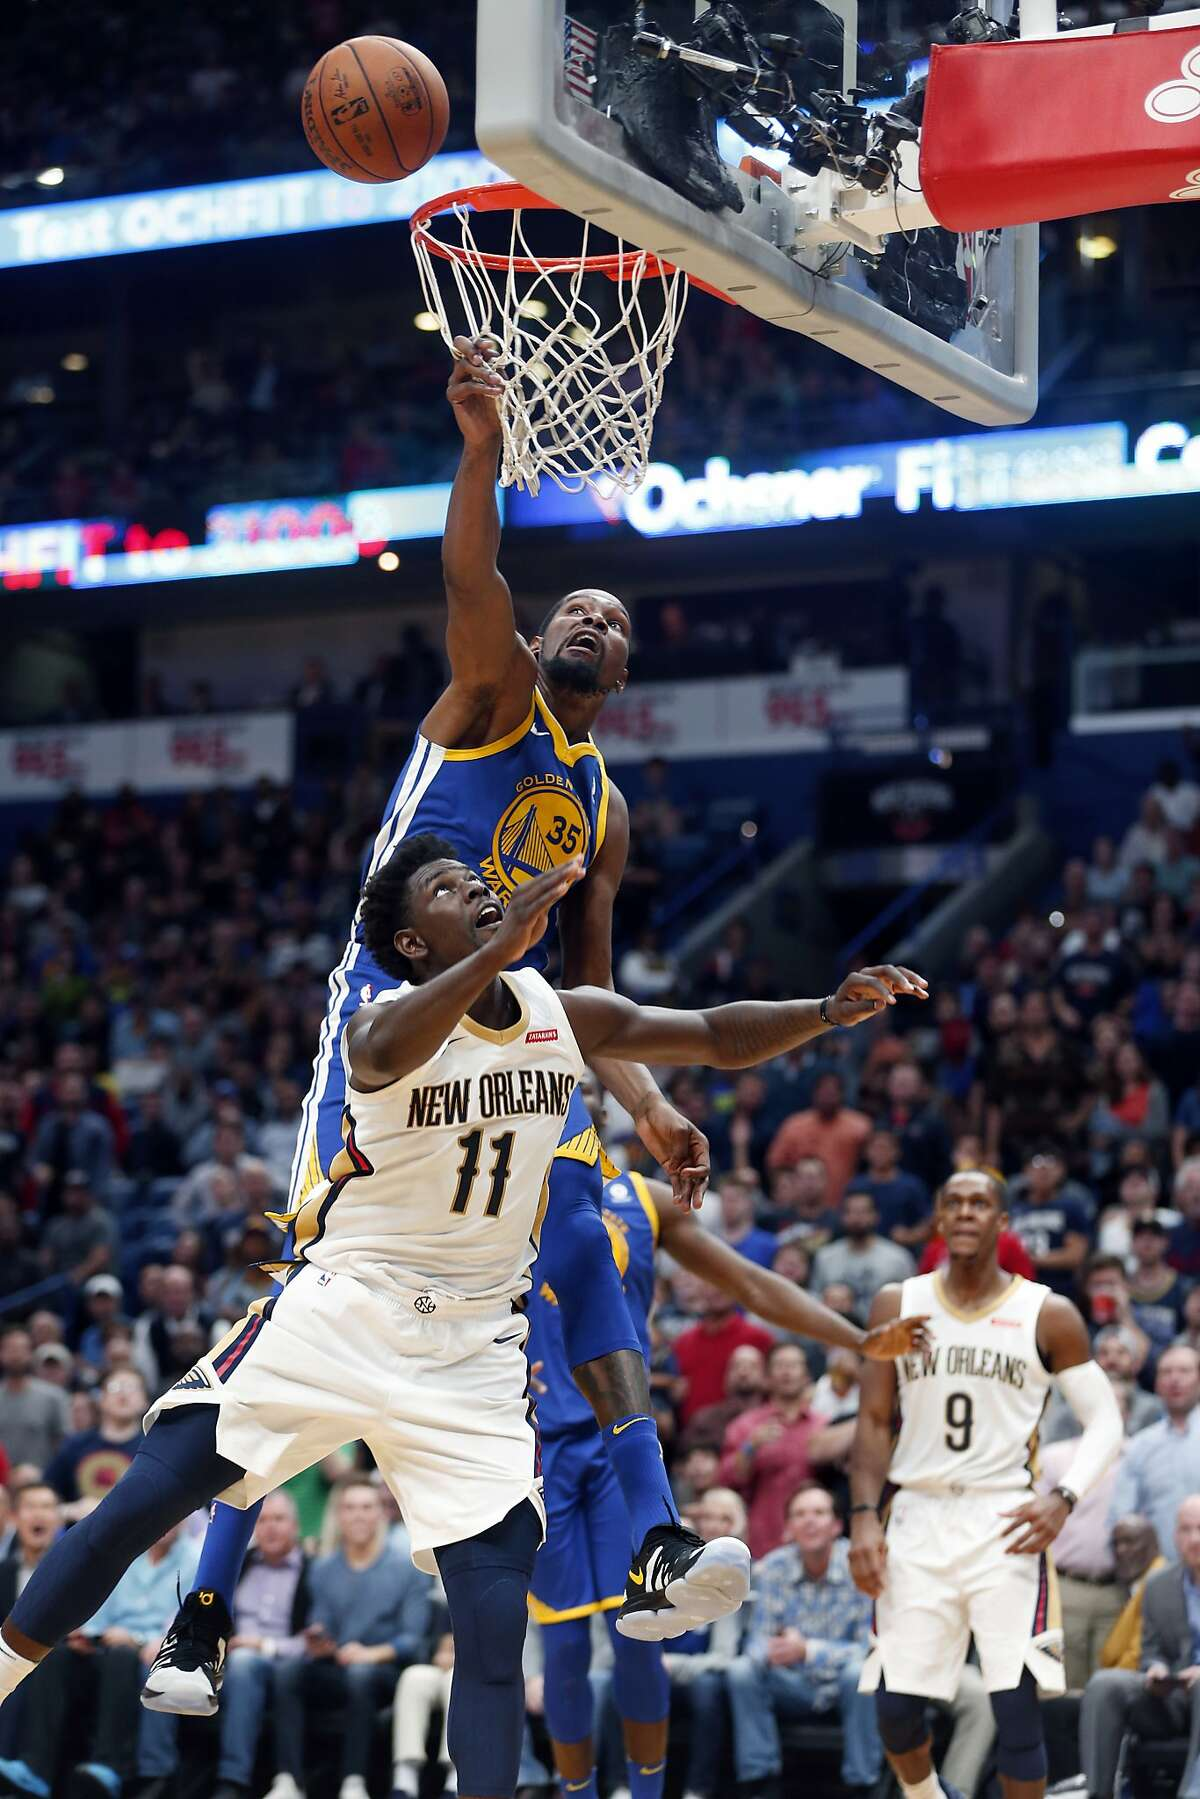 Golden State Warriors forward Kevin Durant (35) blocks a shot by New Orleans Pelicans guard Jrue Holiday (11) but was called for basket interference, in the second half of an NBA basketball game in New Orleans, Monday, Dec. 4, 2017. The Warriors won 125-115.